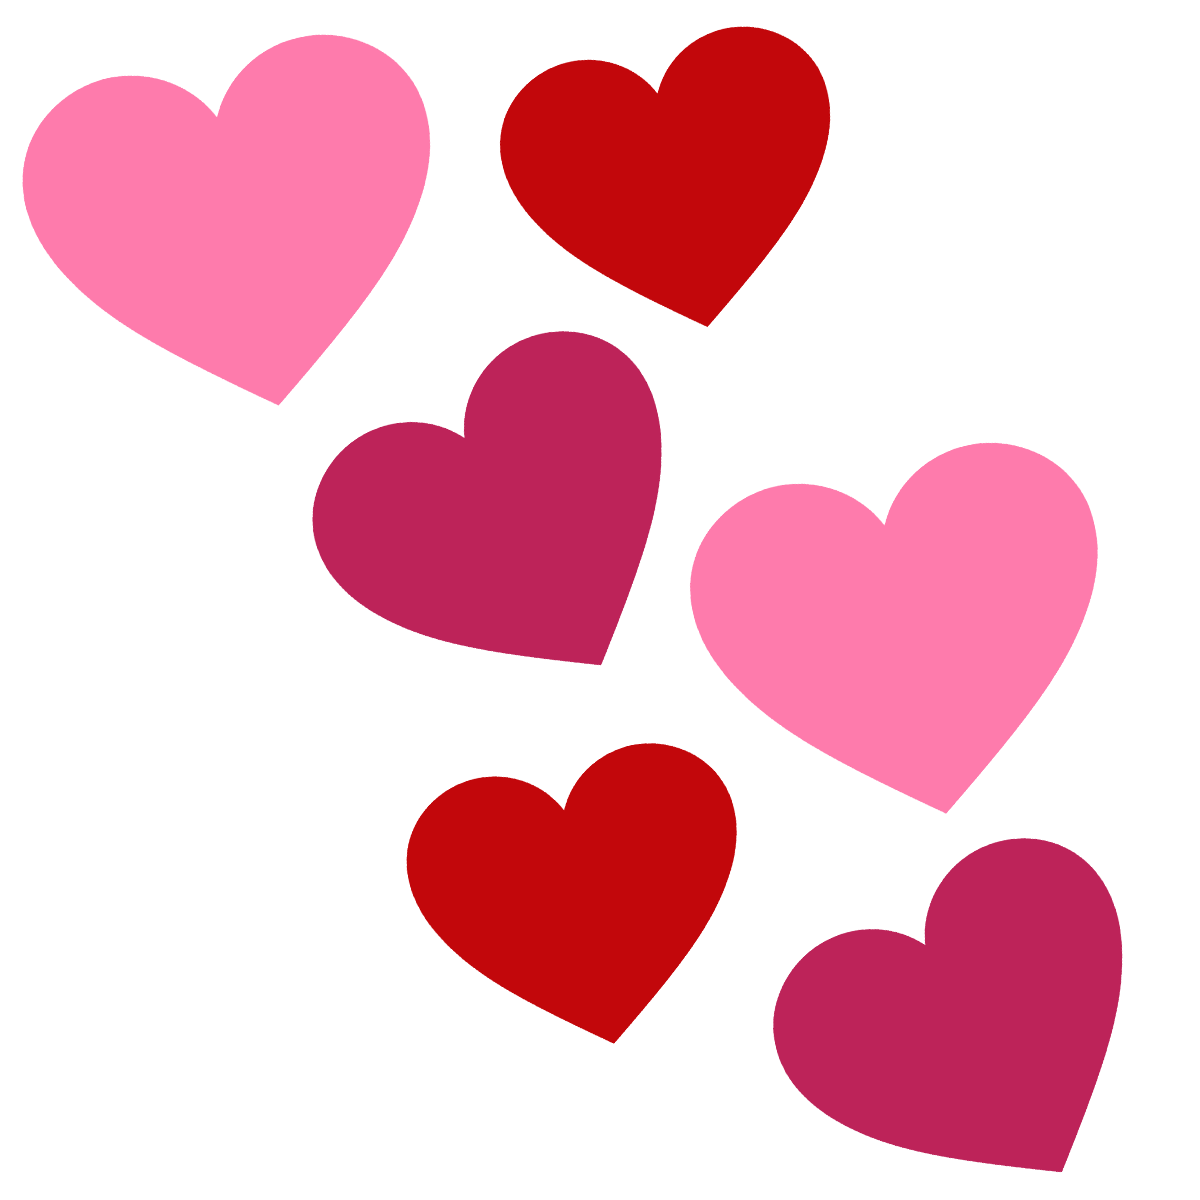 Free clipart valentines day hearts jpg free Hearts Heart Clipart Free Large Images jpg free